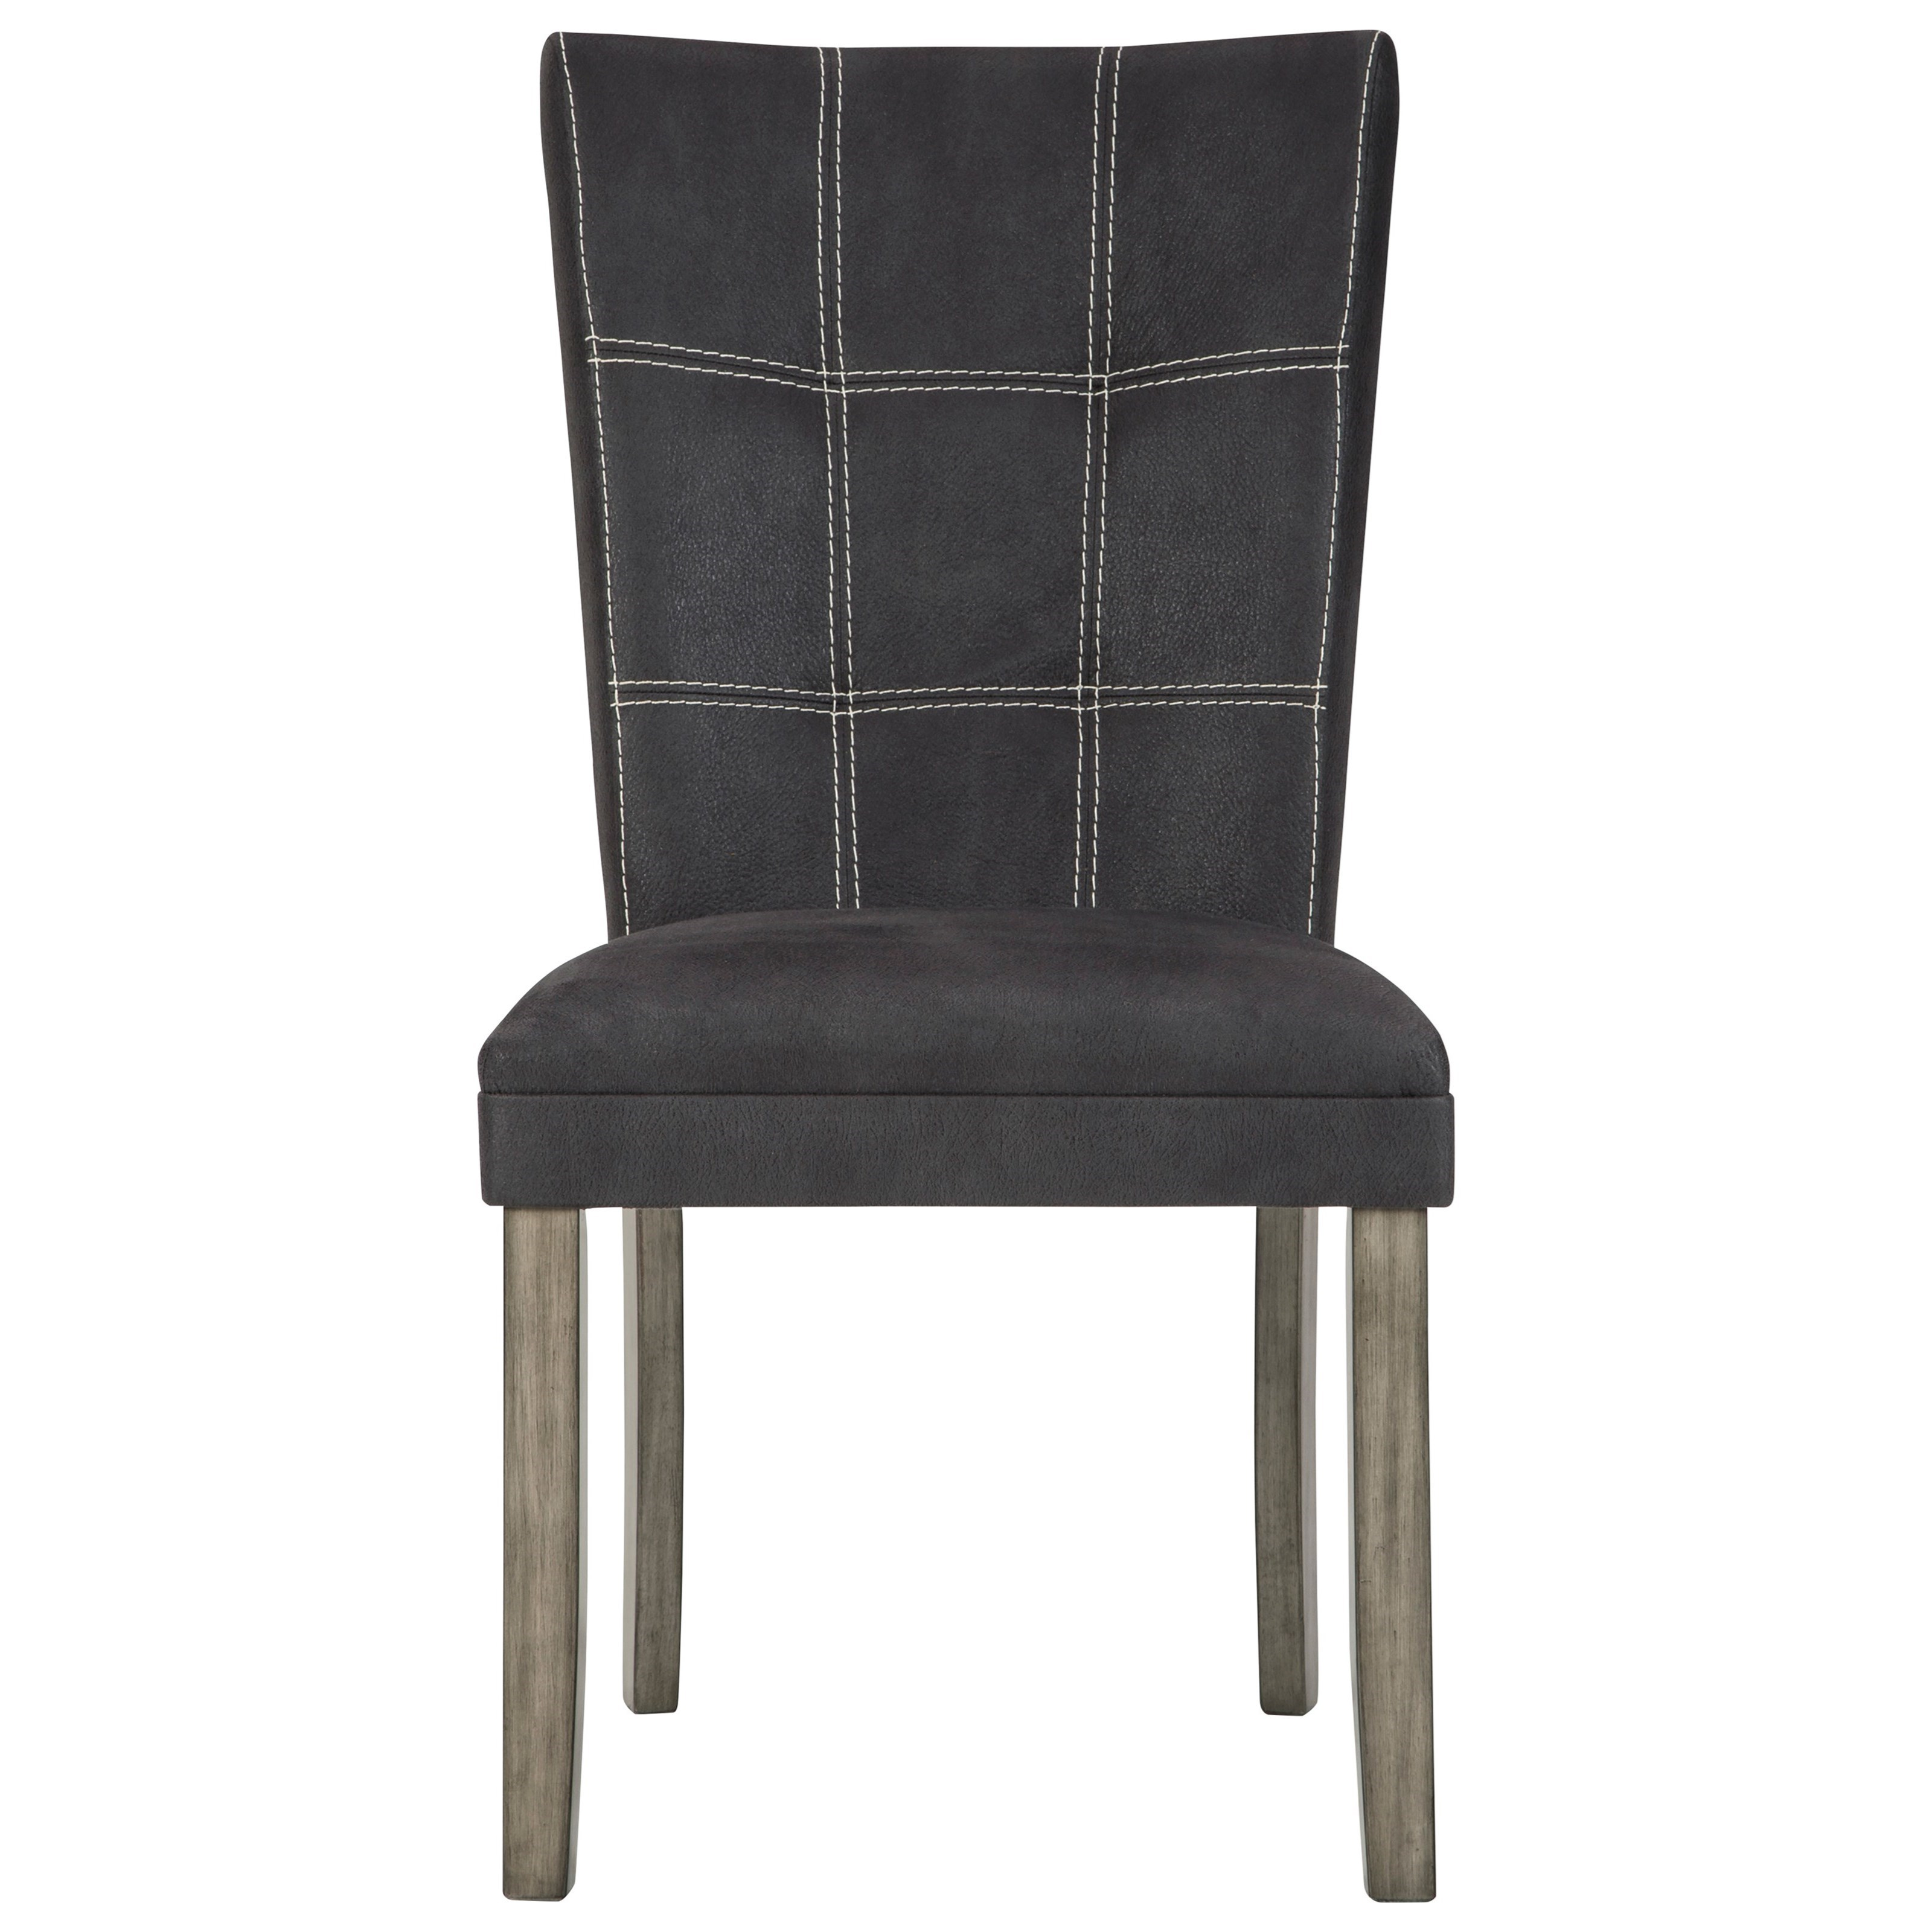 Dontally Dining Upholstered Side Chair by Benchcraft at Walker's Furniture